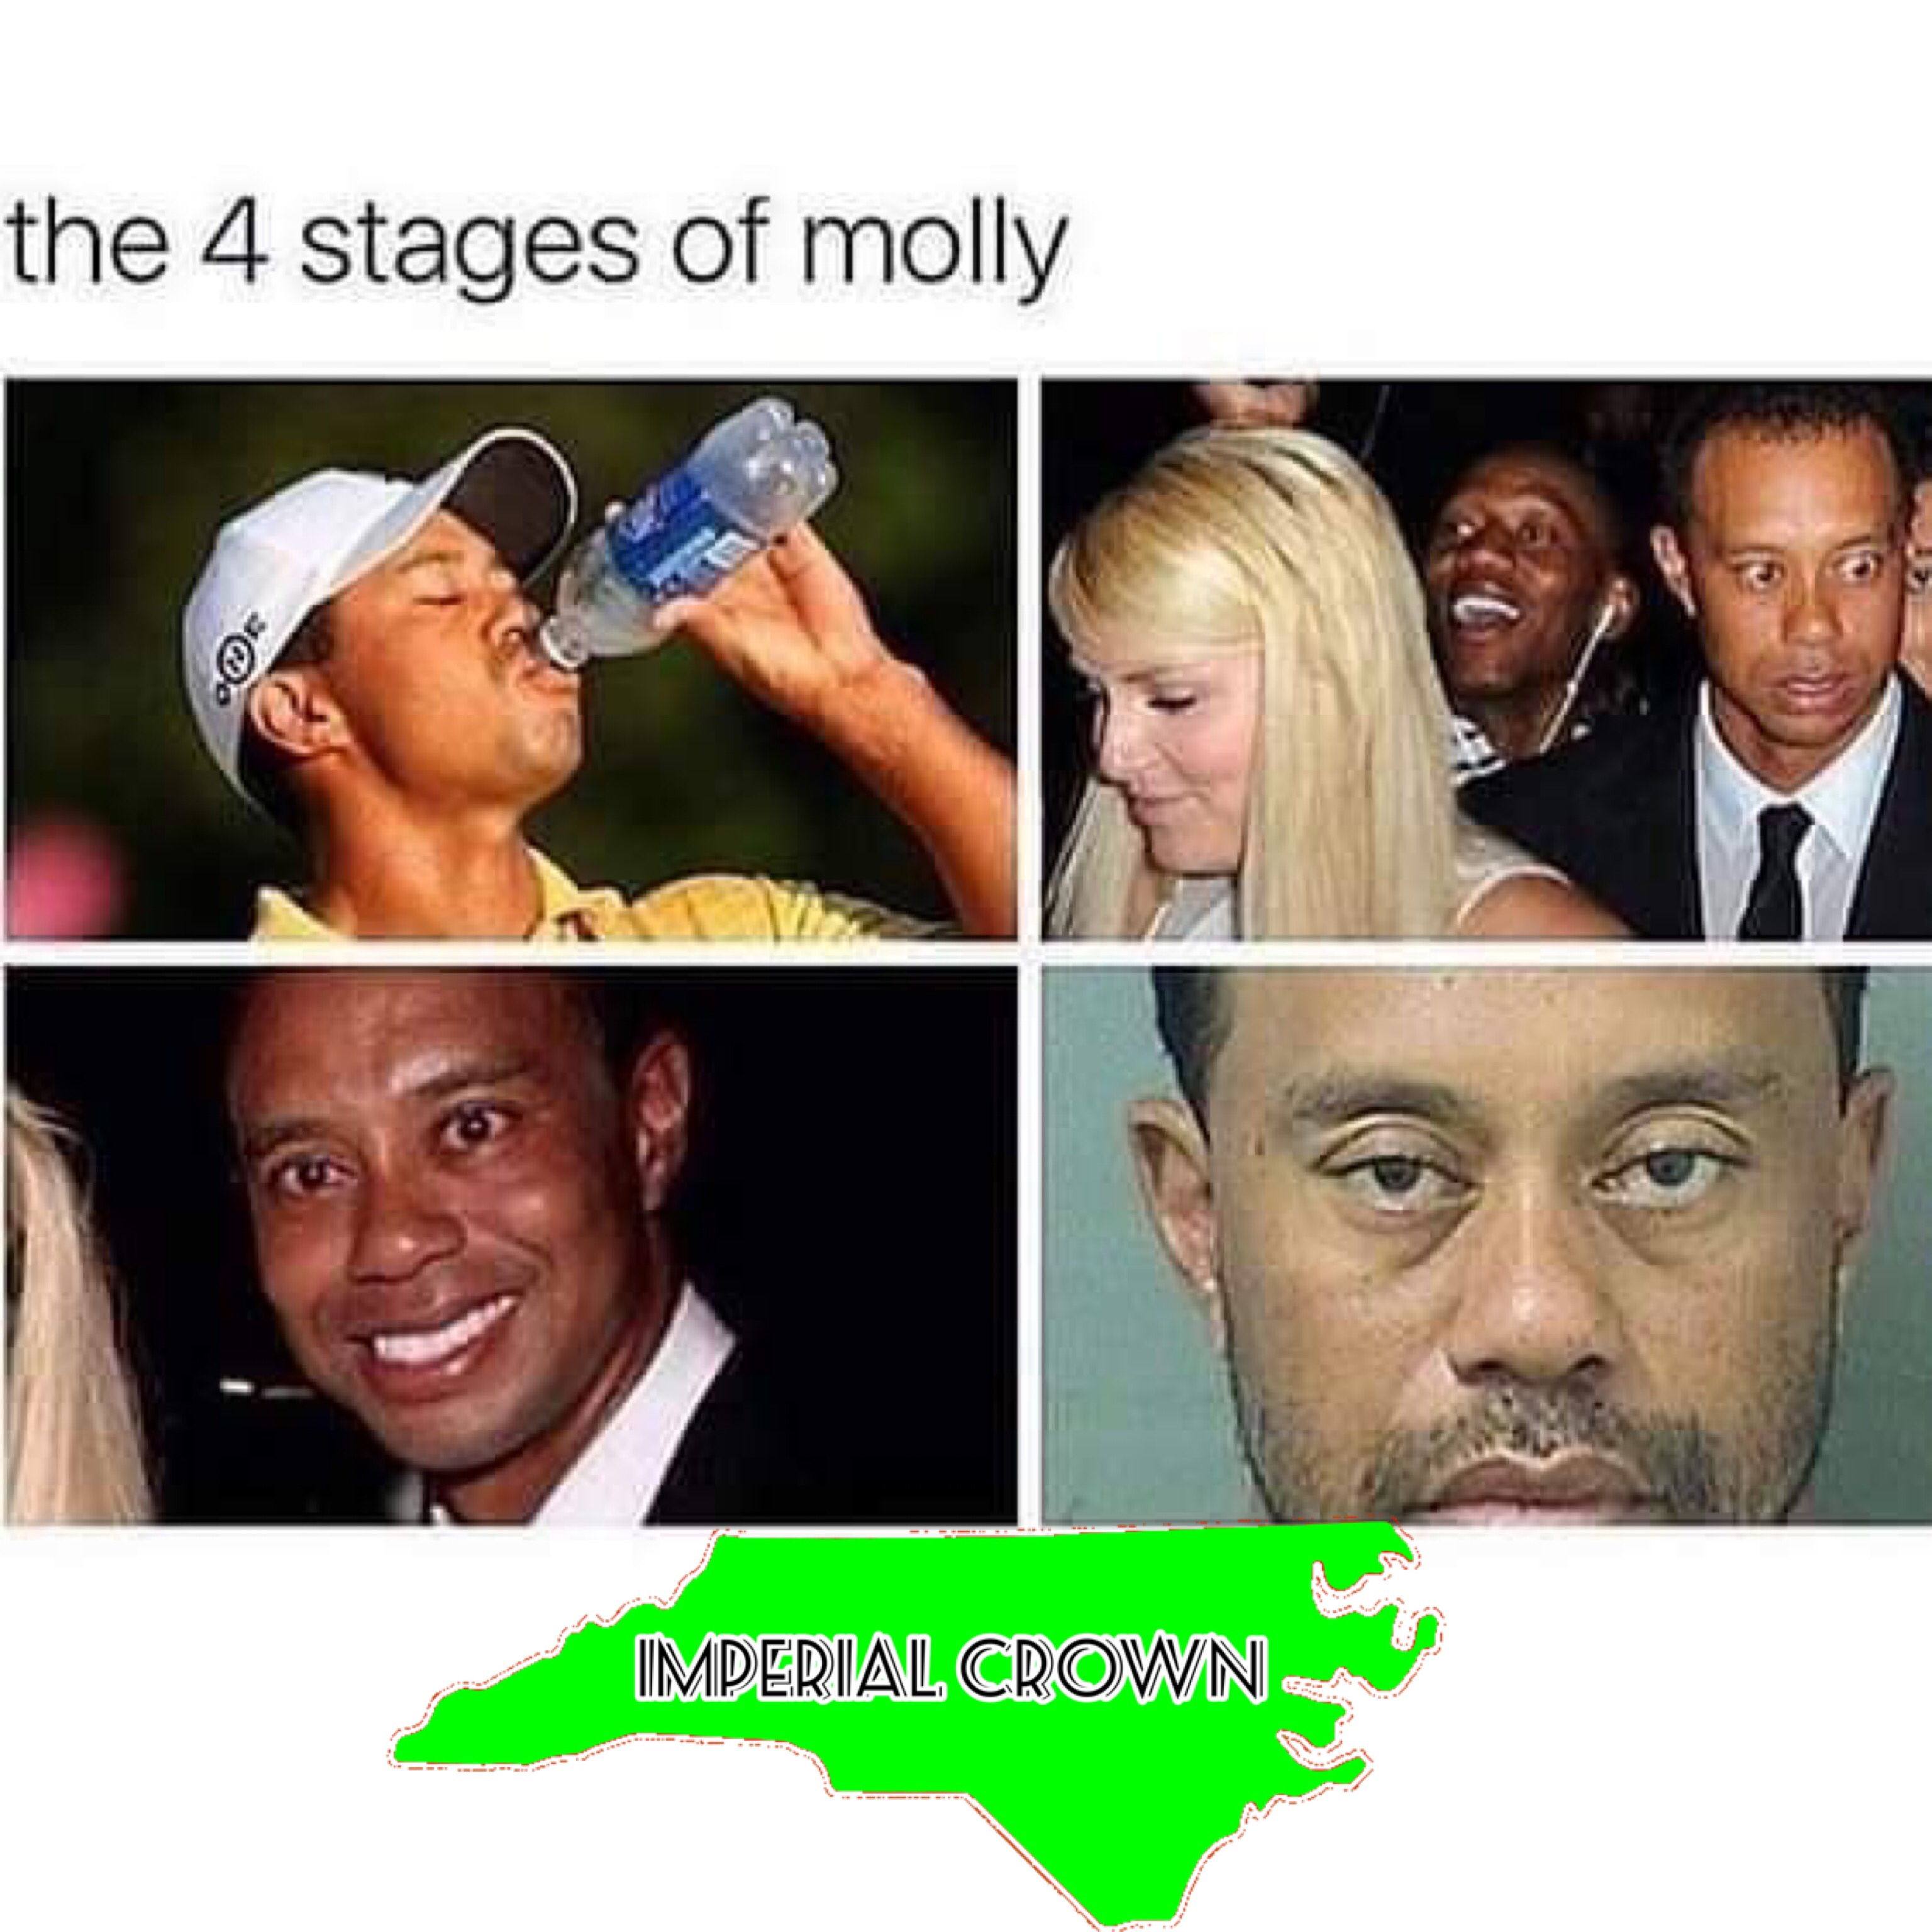 The 4 stages of molly…